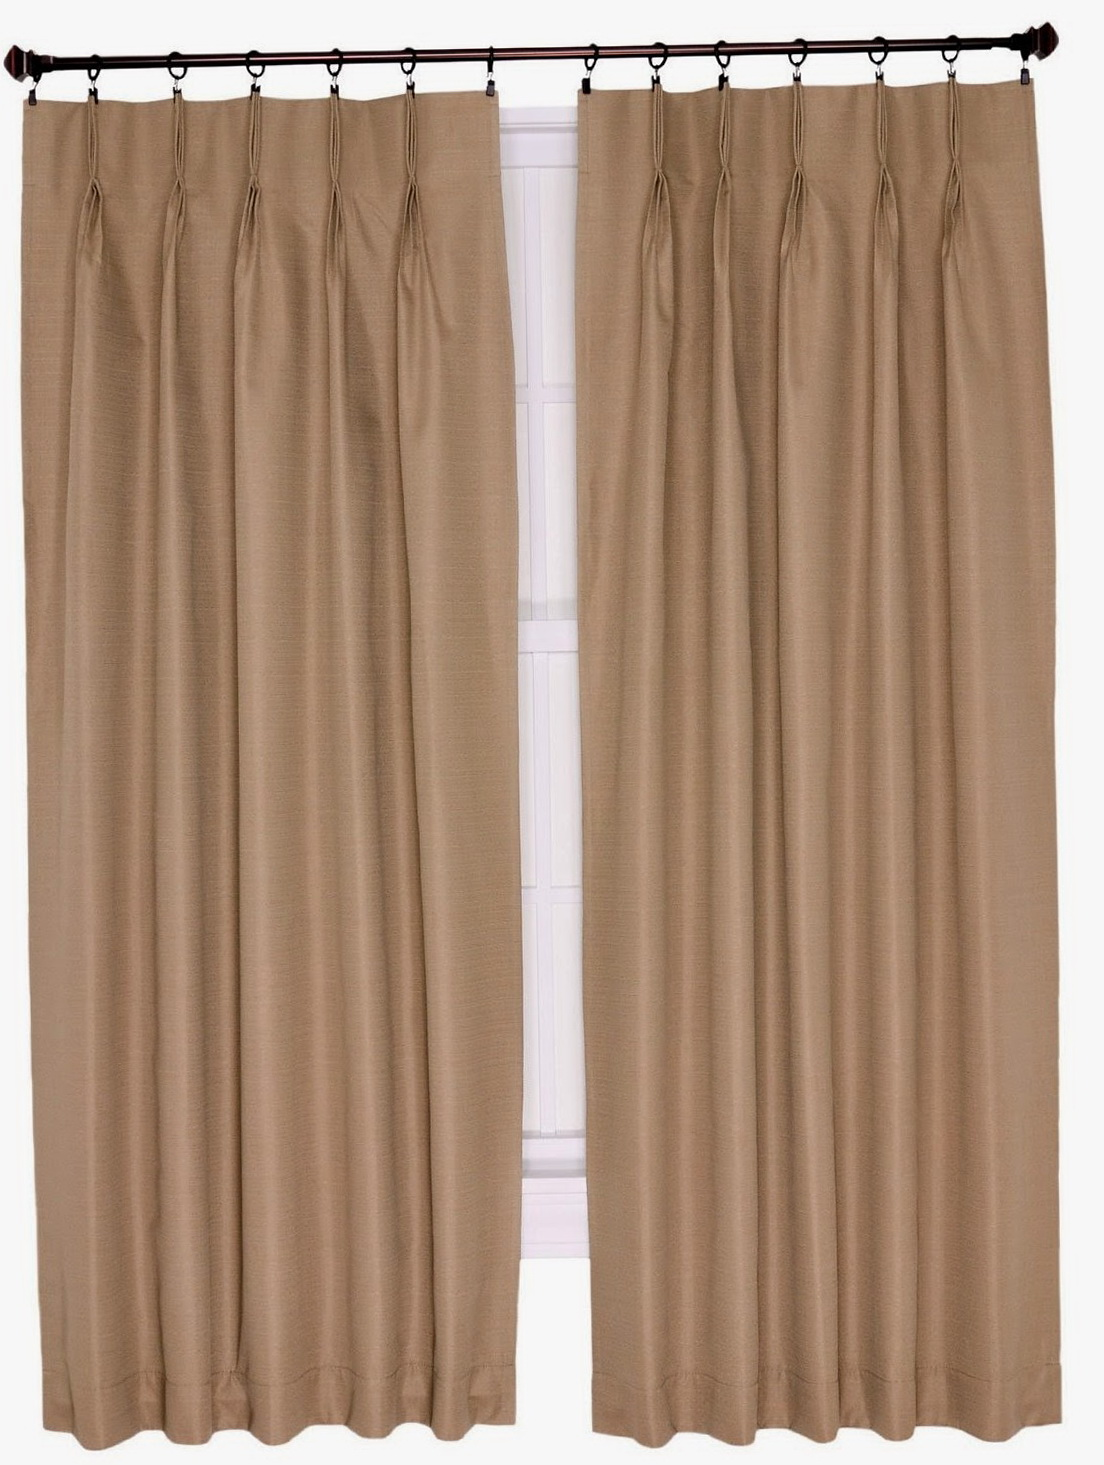 Pinch Pleated Curtains For Traverse Rod